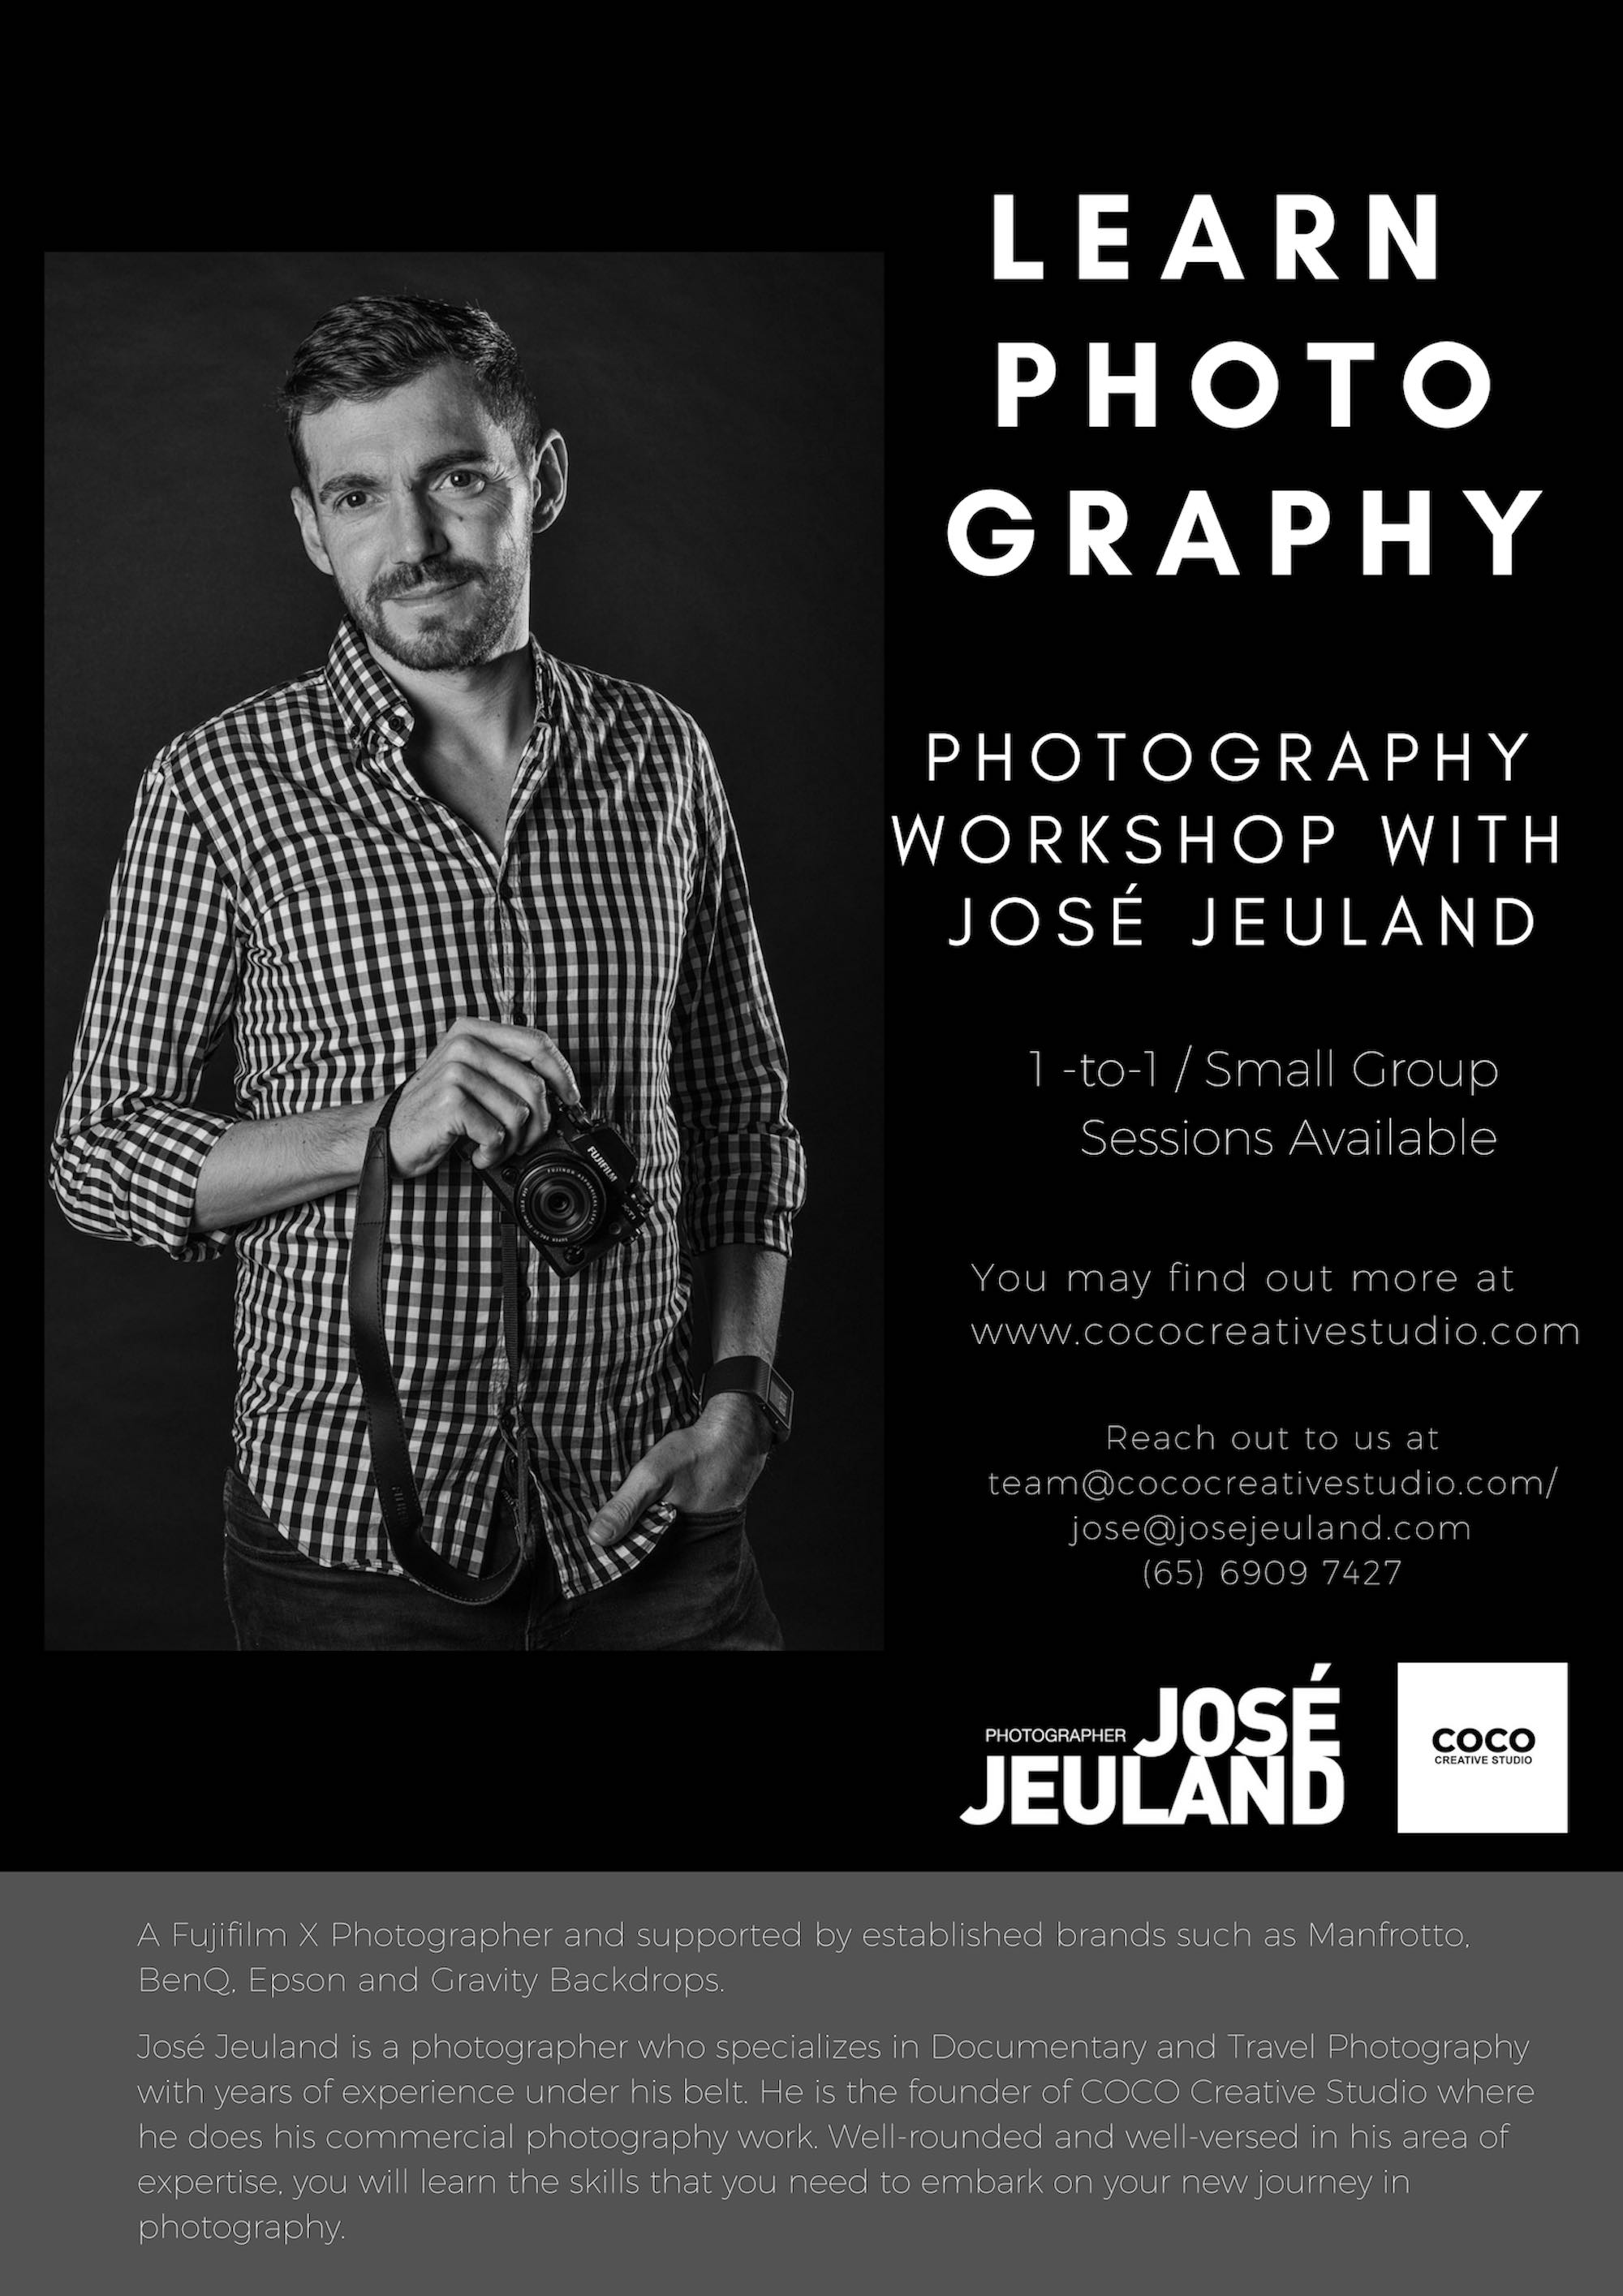 Jose Jeuland Photography Workshop singapore photographer photowalk